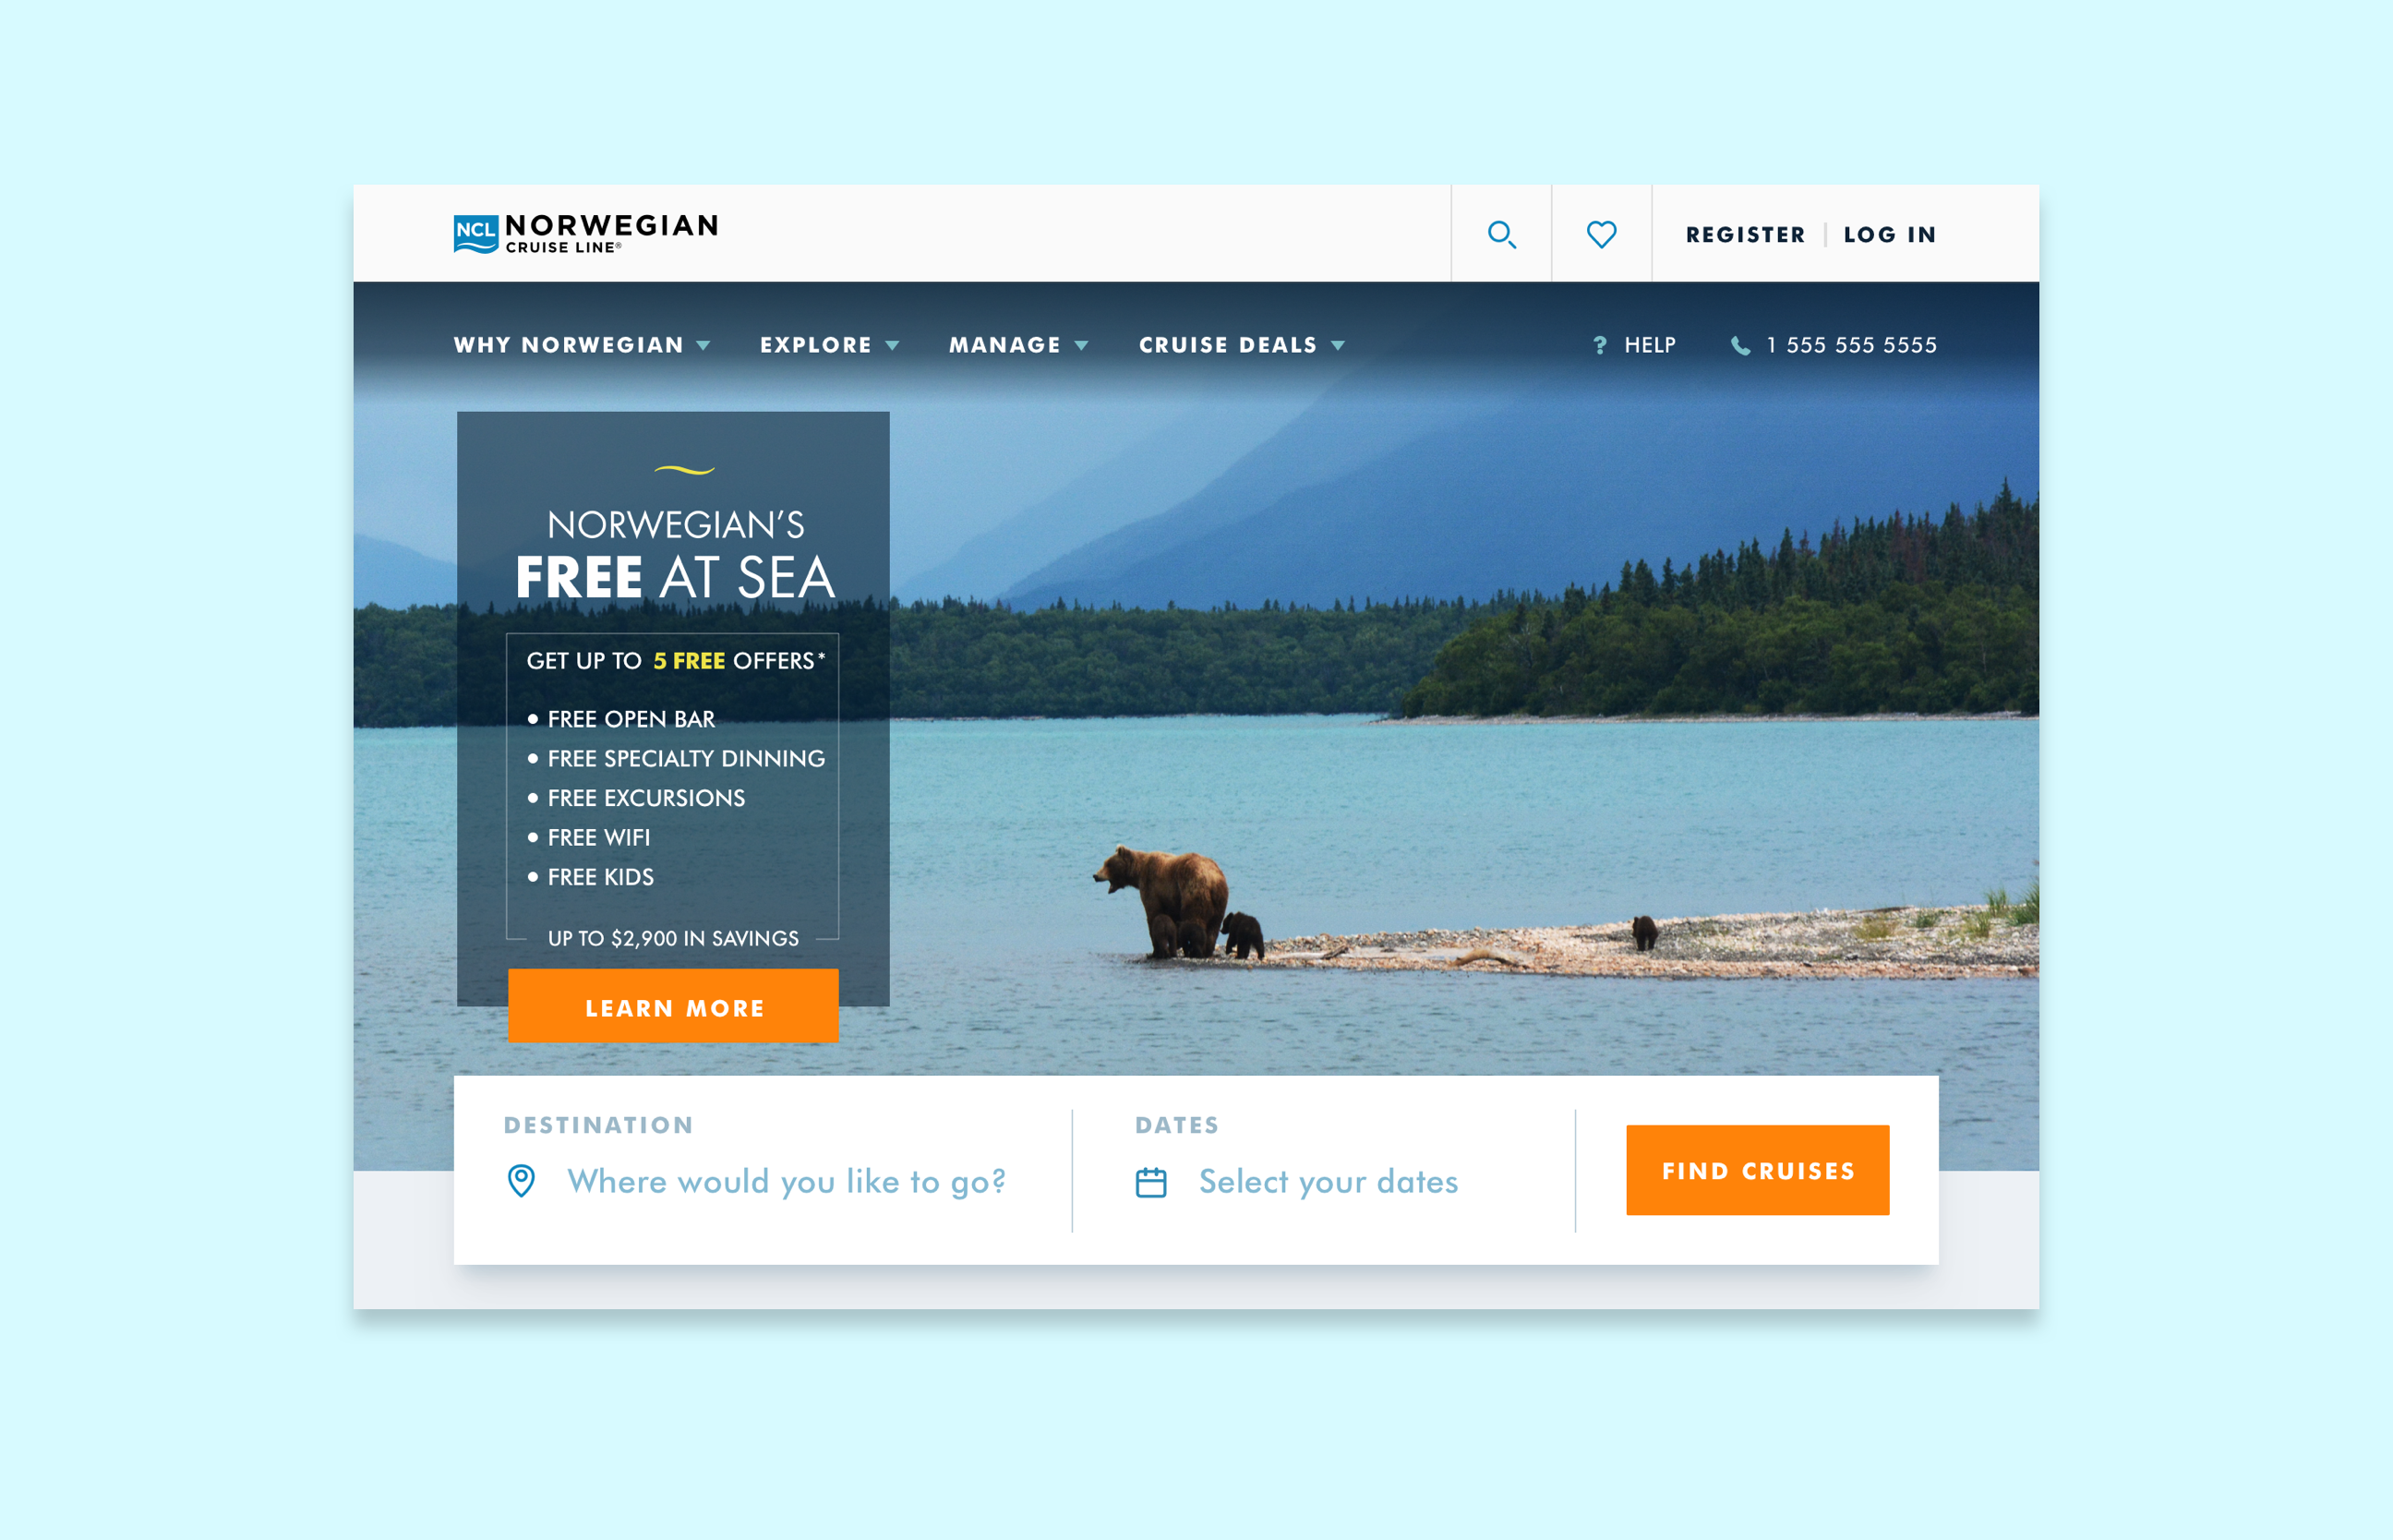 NCL.com homepage comp showing promotion and a large hero image with bear walking towards water in Alaska.